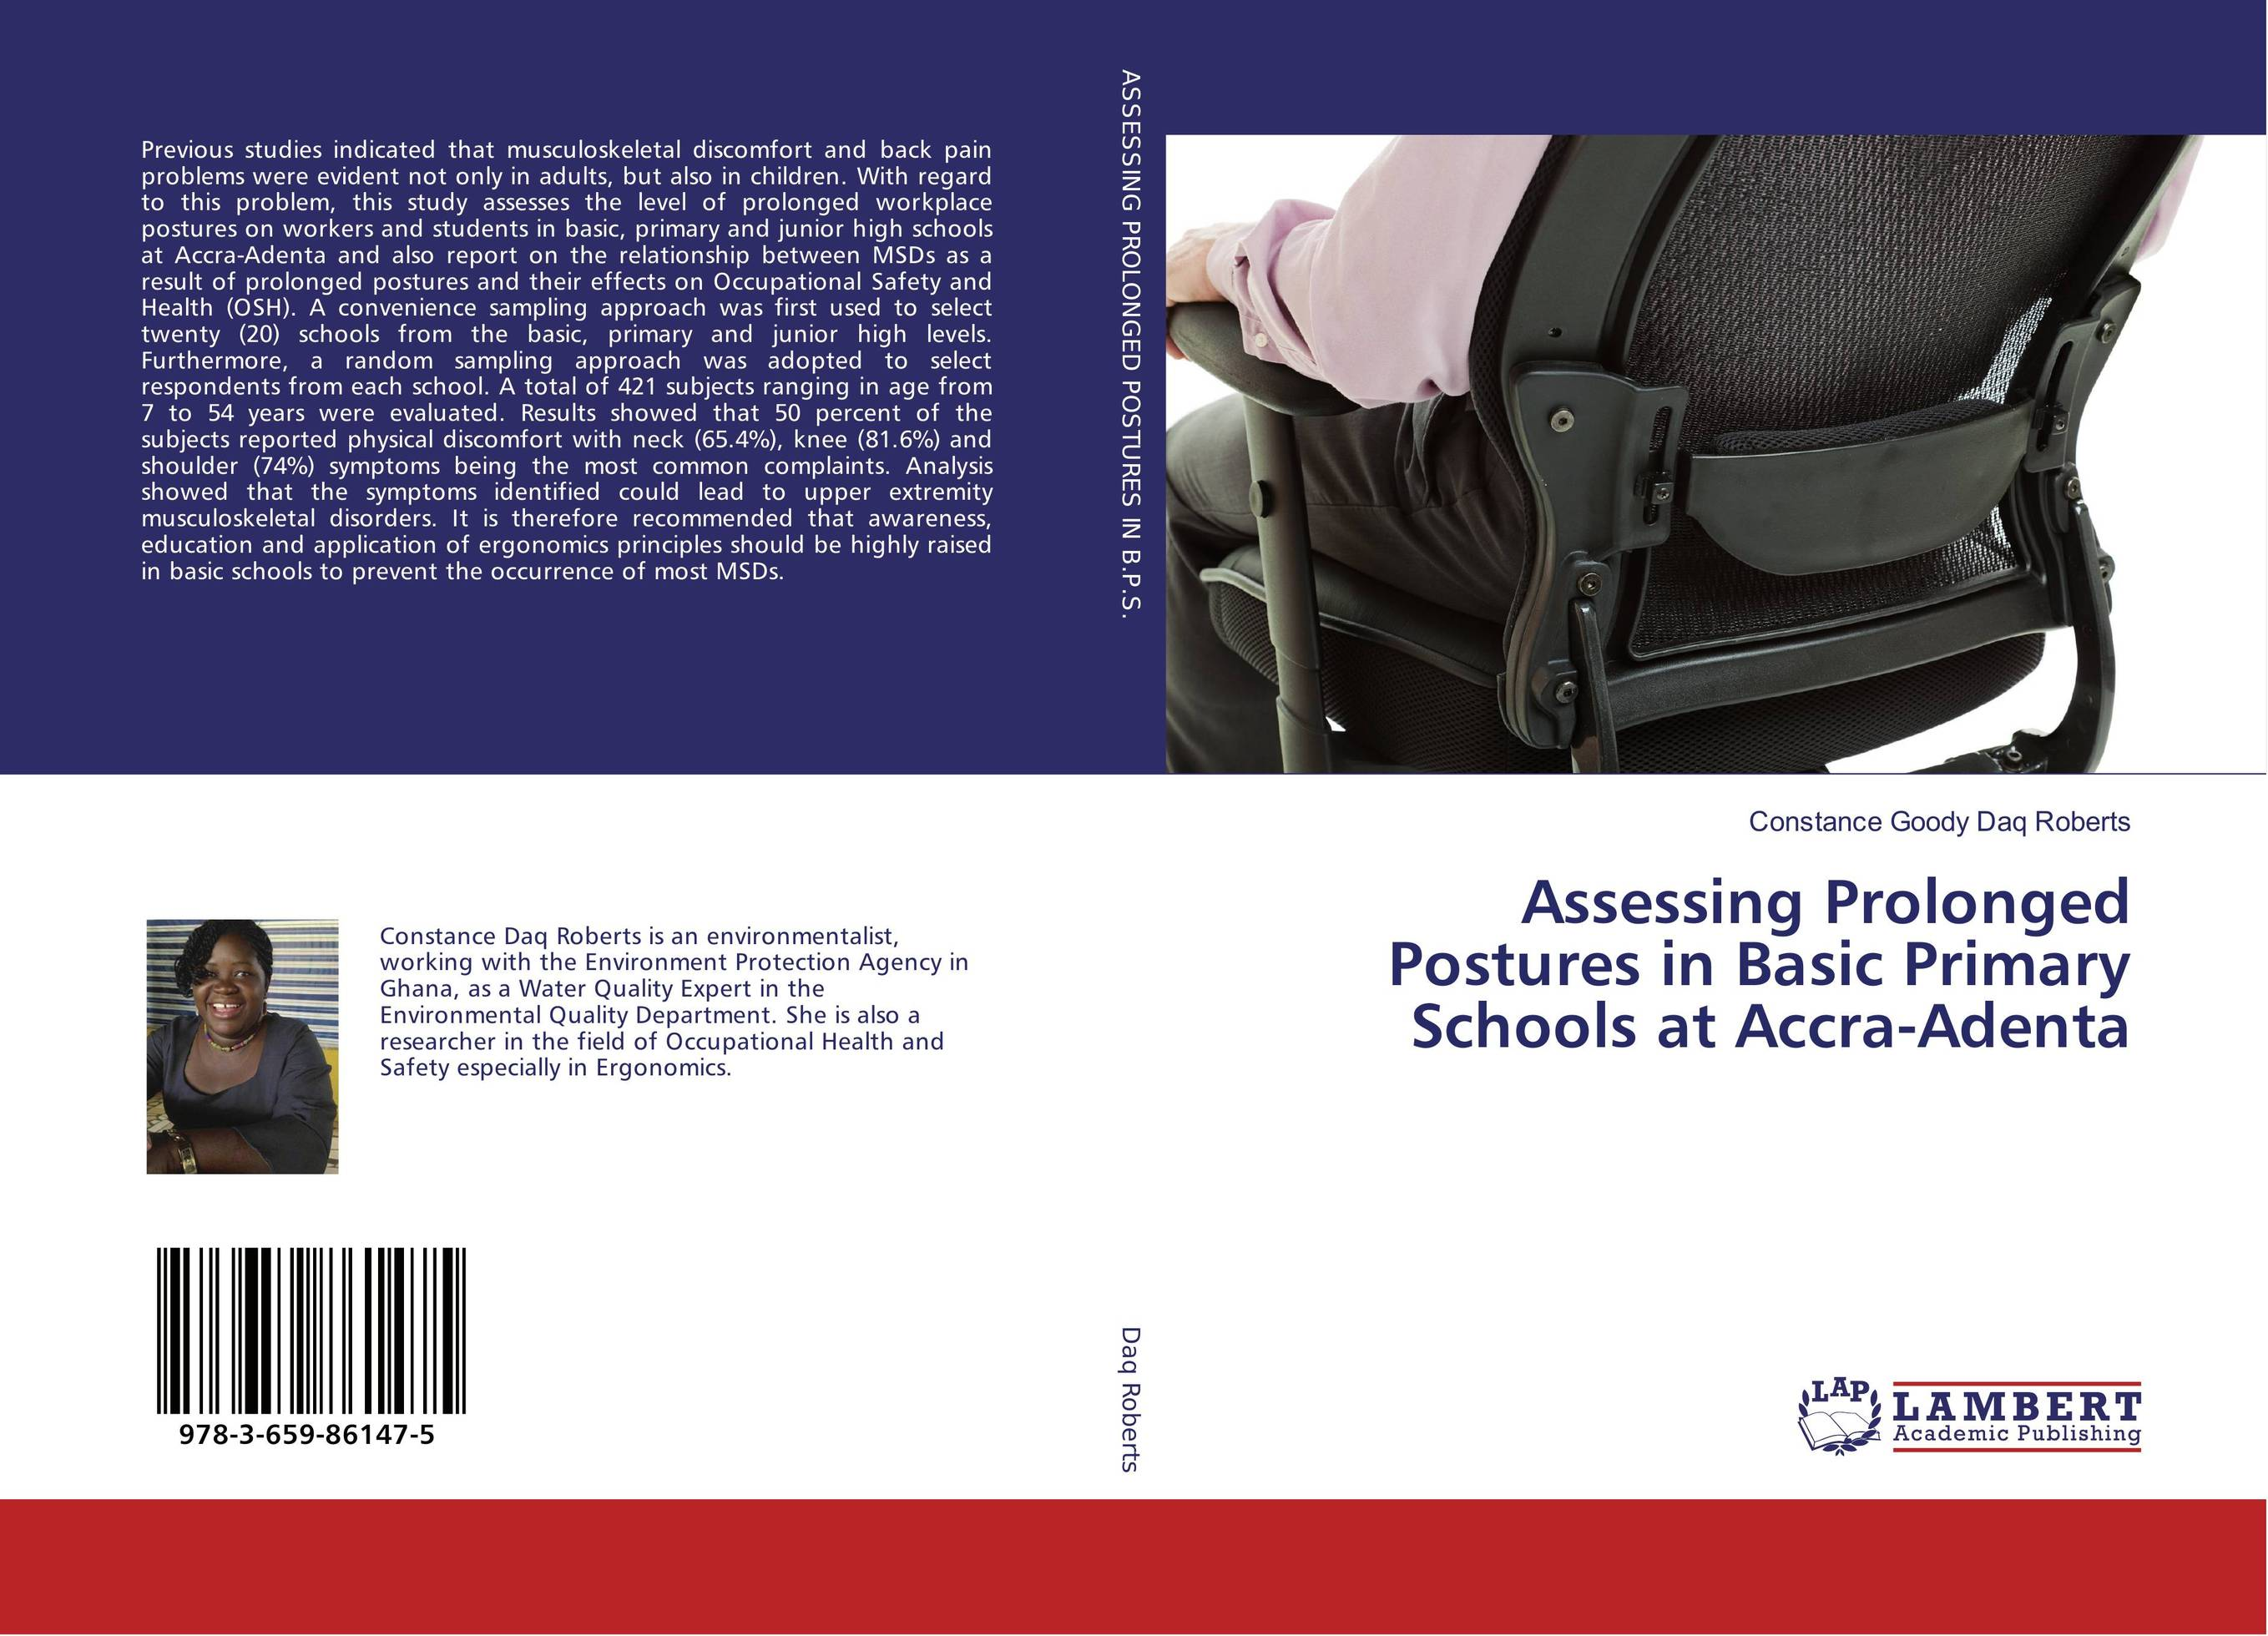 Assessing Prolonged Postures in Basic Primary Schools at Accra-Adenta assessing the toxic effects of sodium metabisulphite